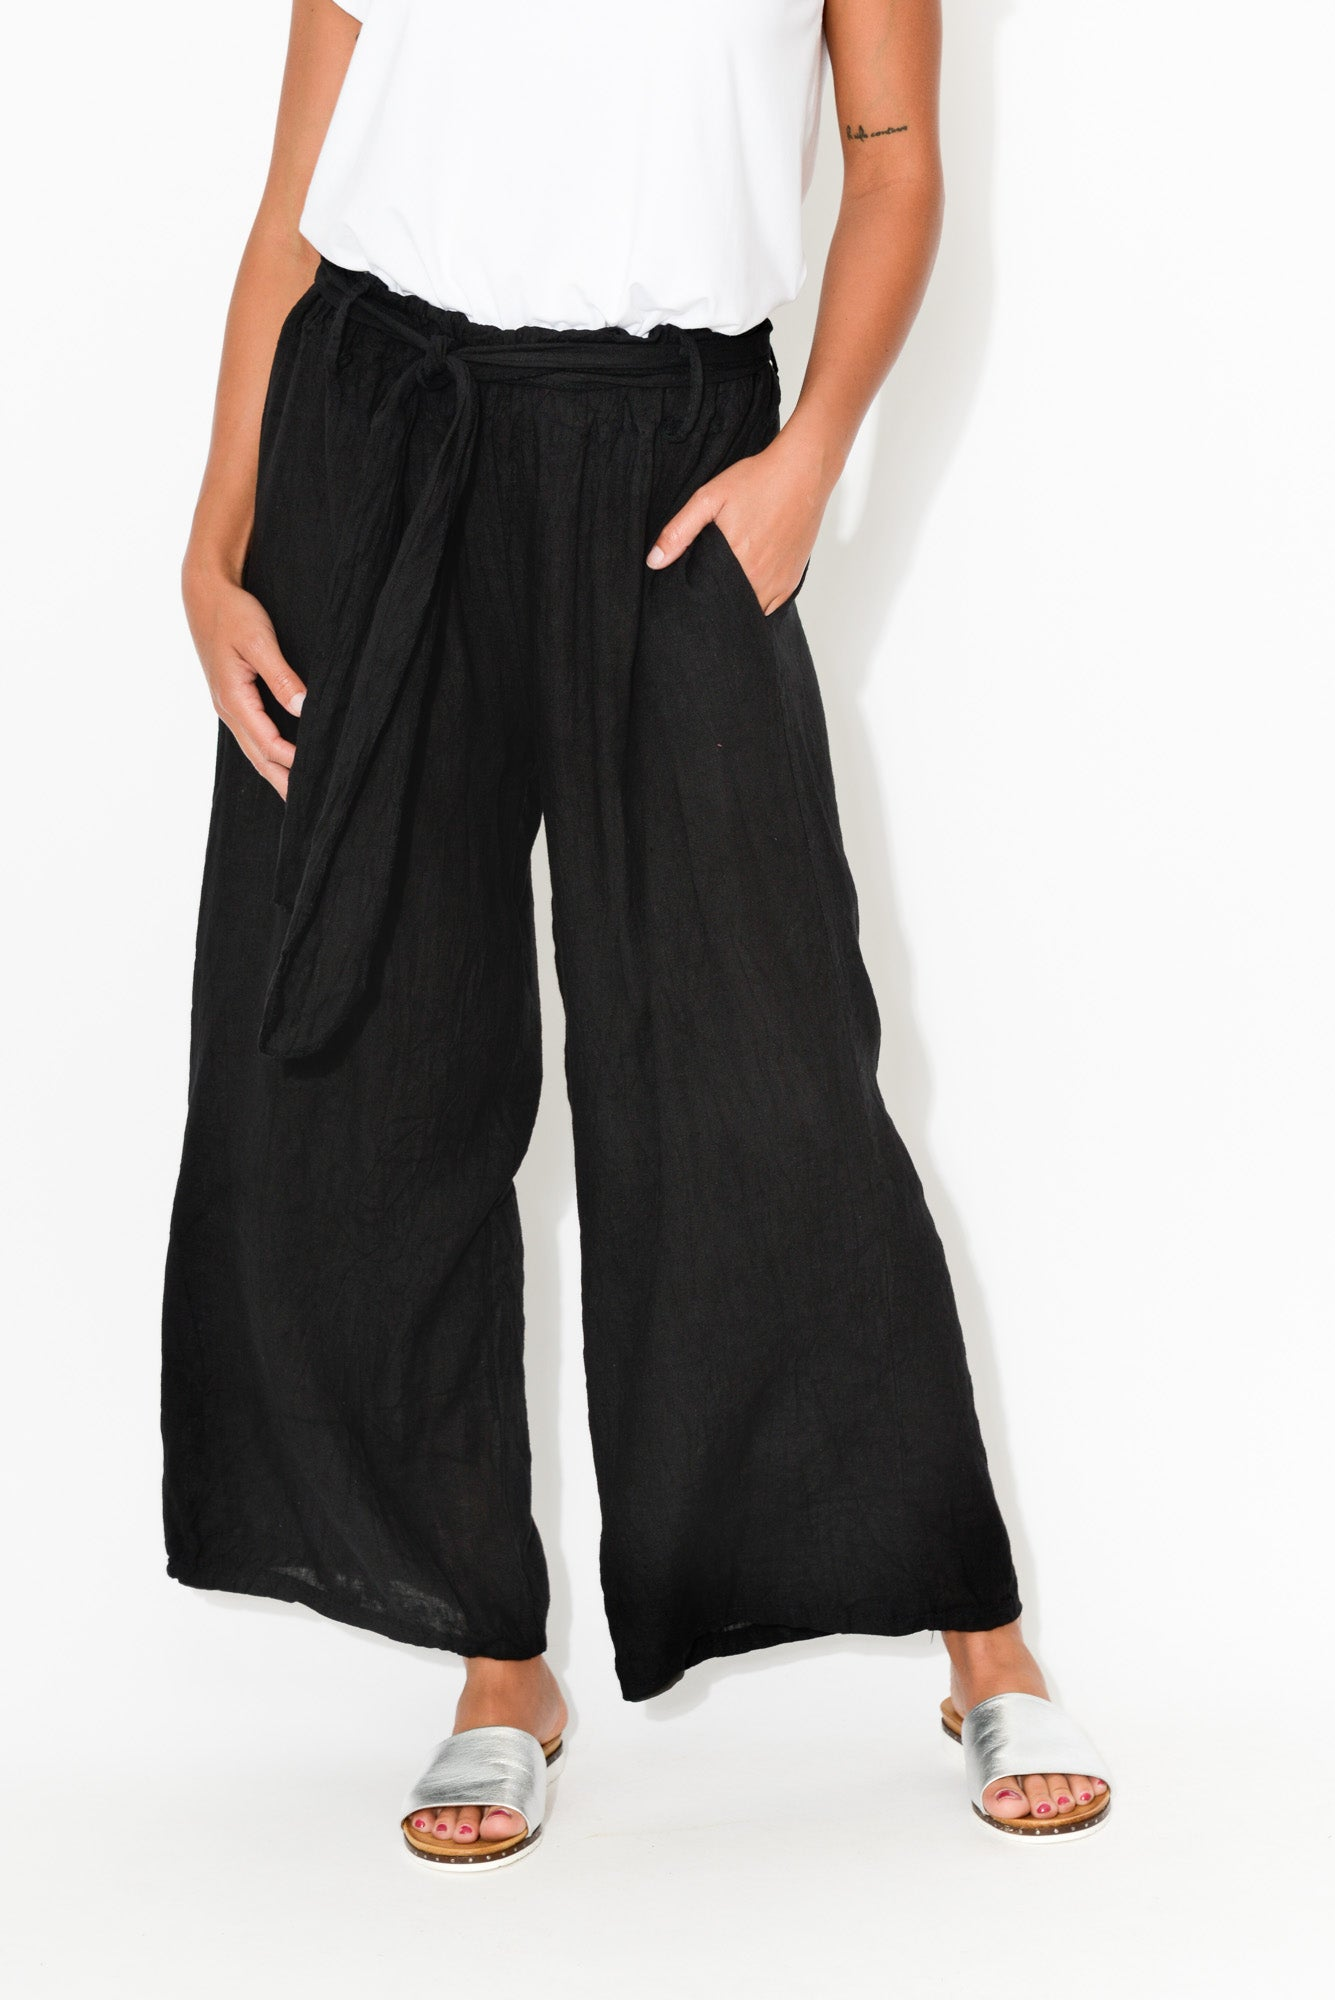 Arabella Black Wide Leg Linen Pant